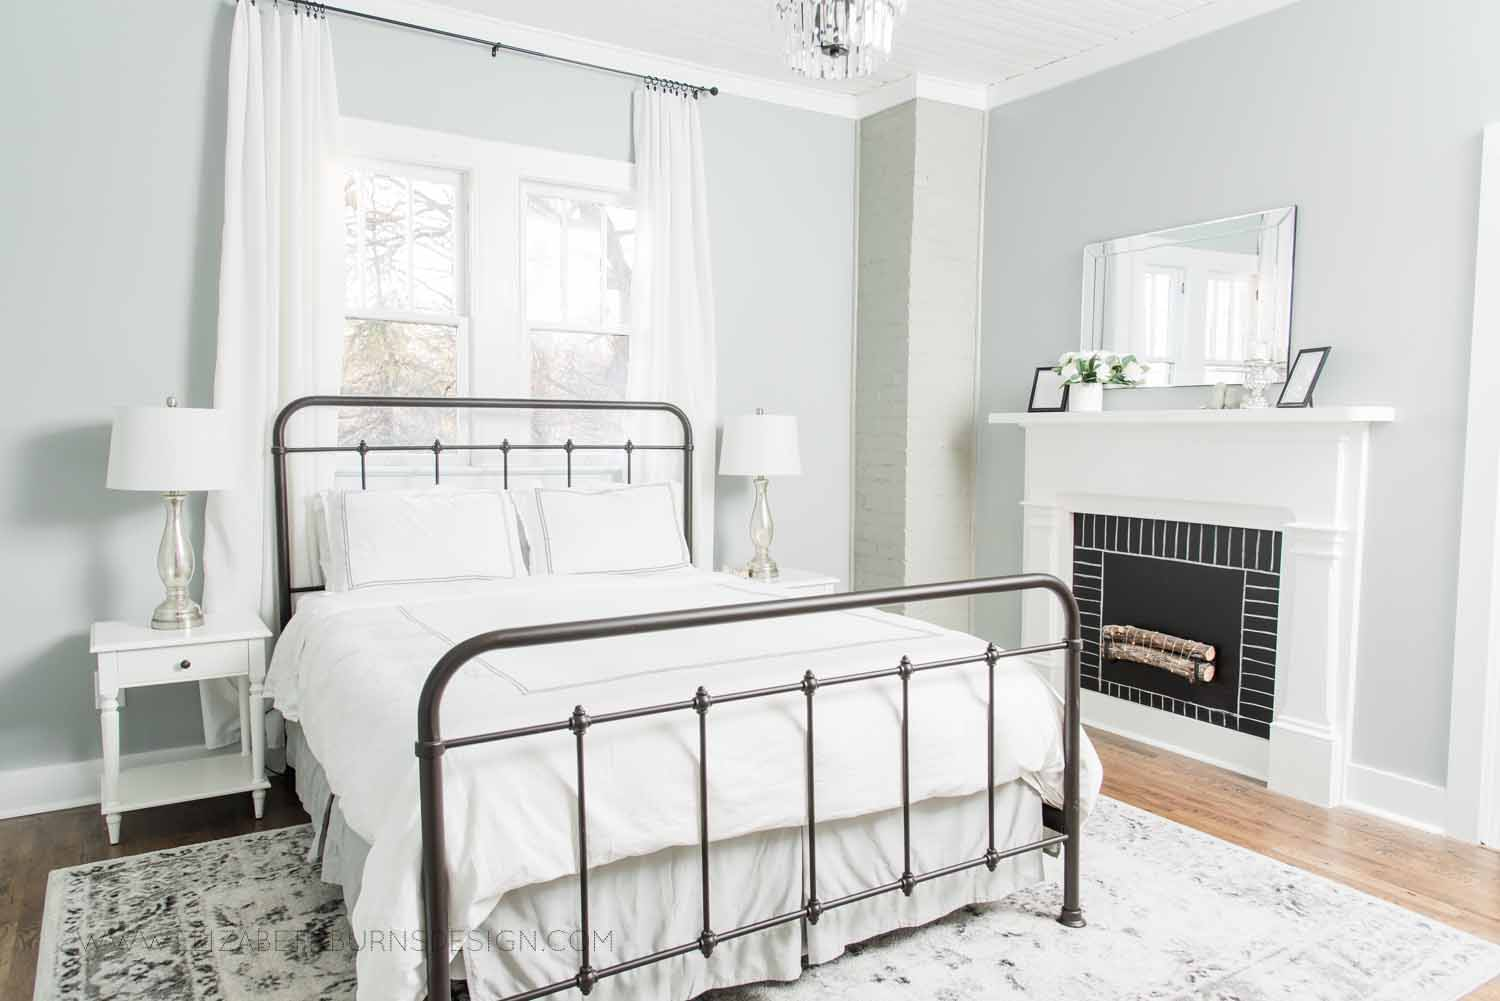 Elizabeth Burns Design Raleigh Interior Designer  Farmhouse Fixer Upper Cottage Renovation, Sherwin Williams Magnetic Gray SW 7058 Traditional Master Bedroom (2).jpg